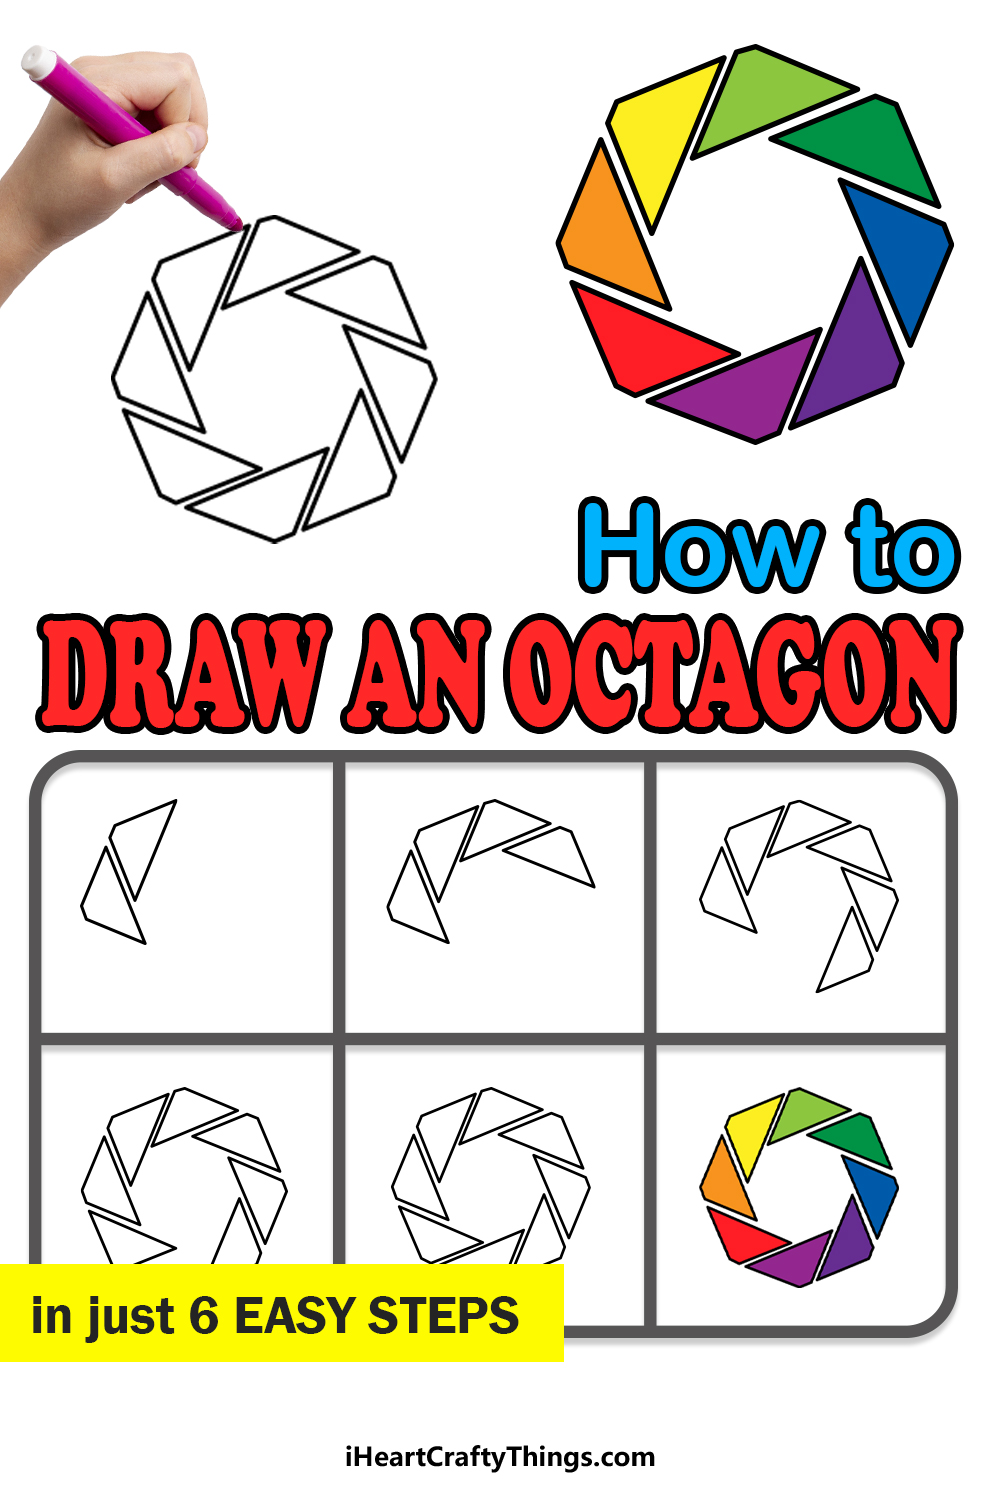 how to draw an octagon in 6 easy steps